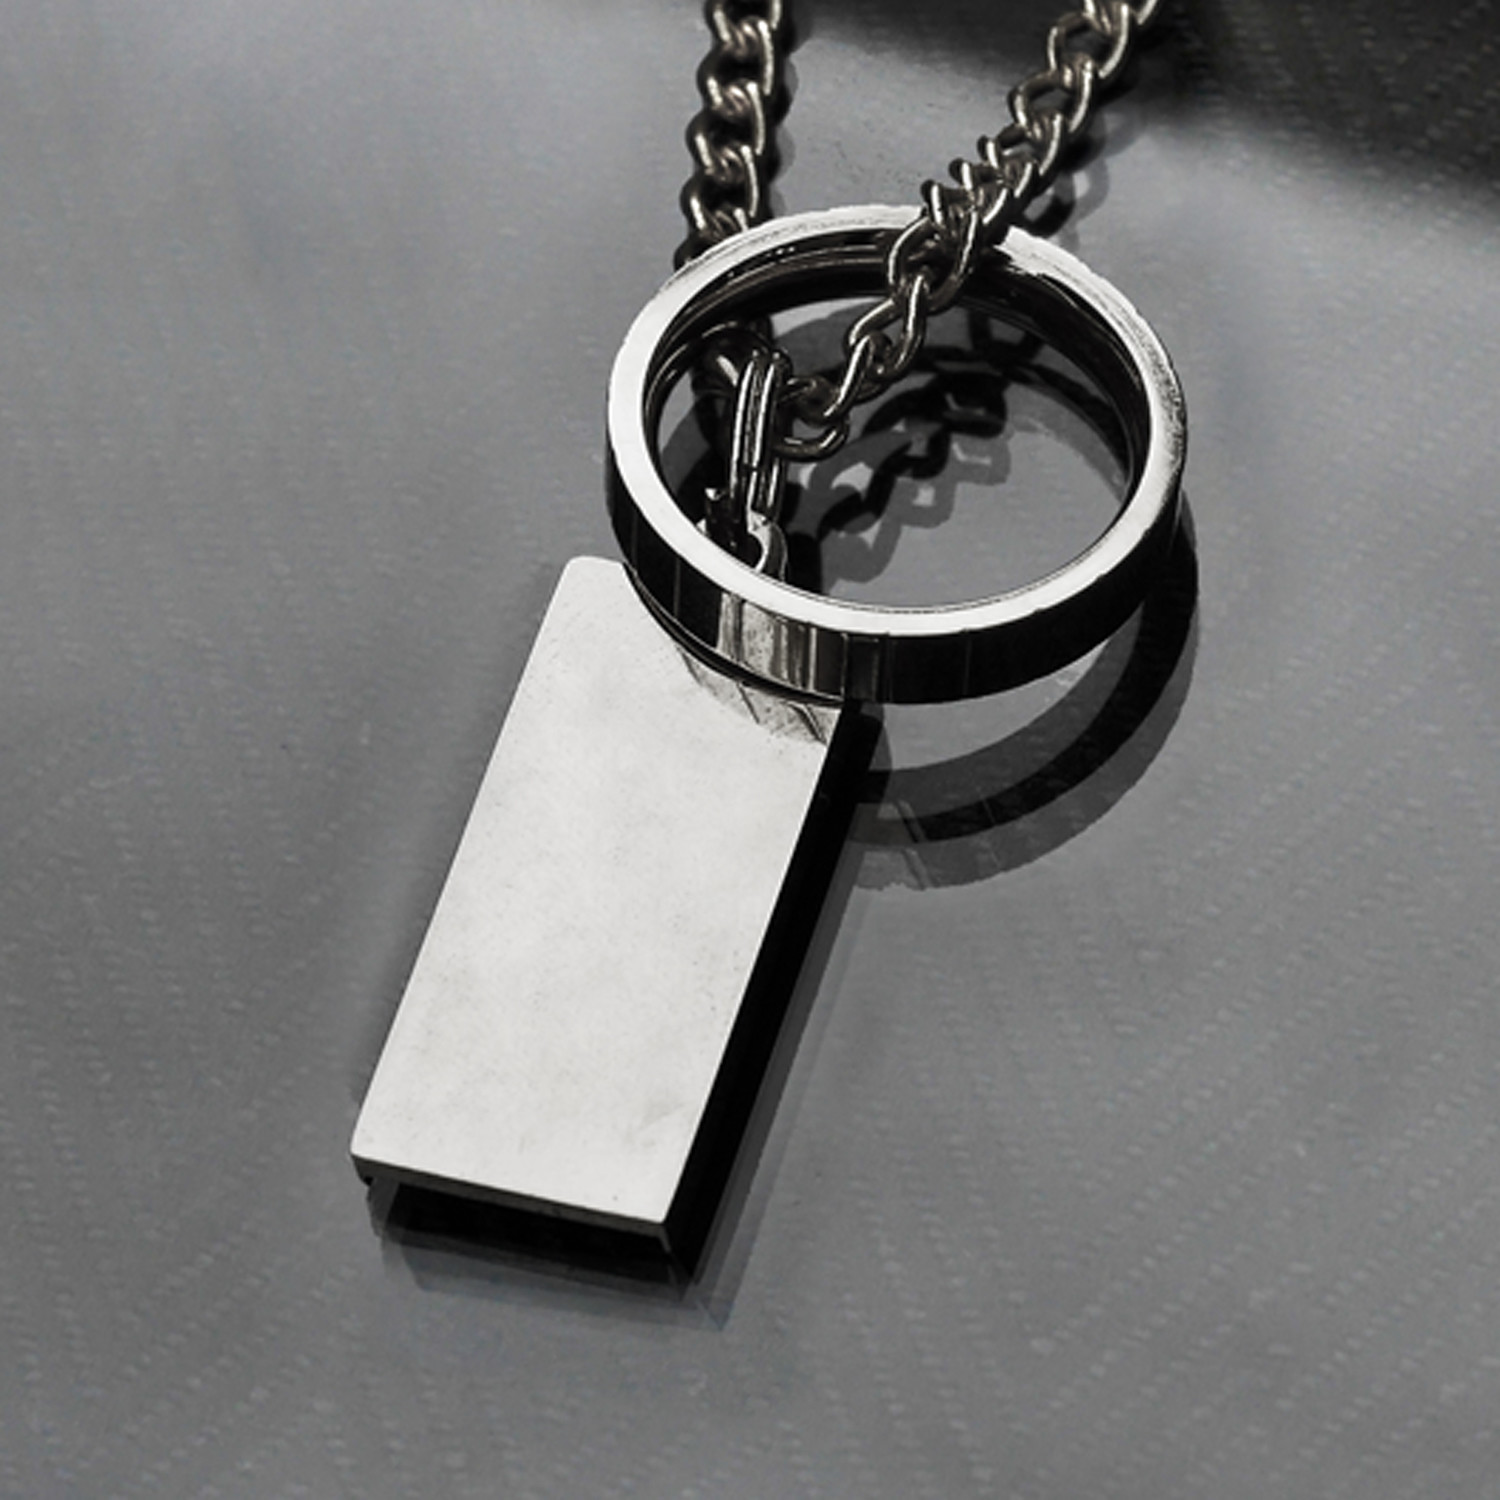 usb drive necklace black jaefields touch of modern